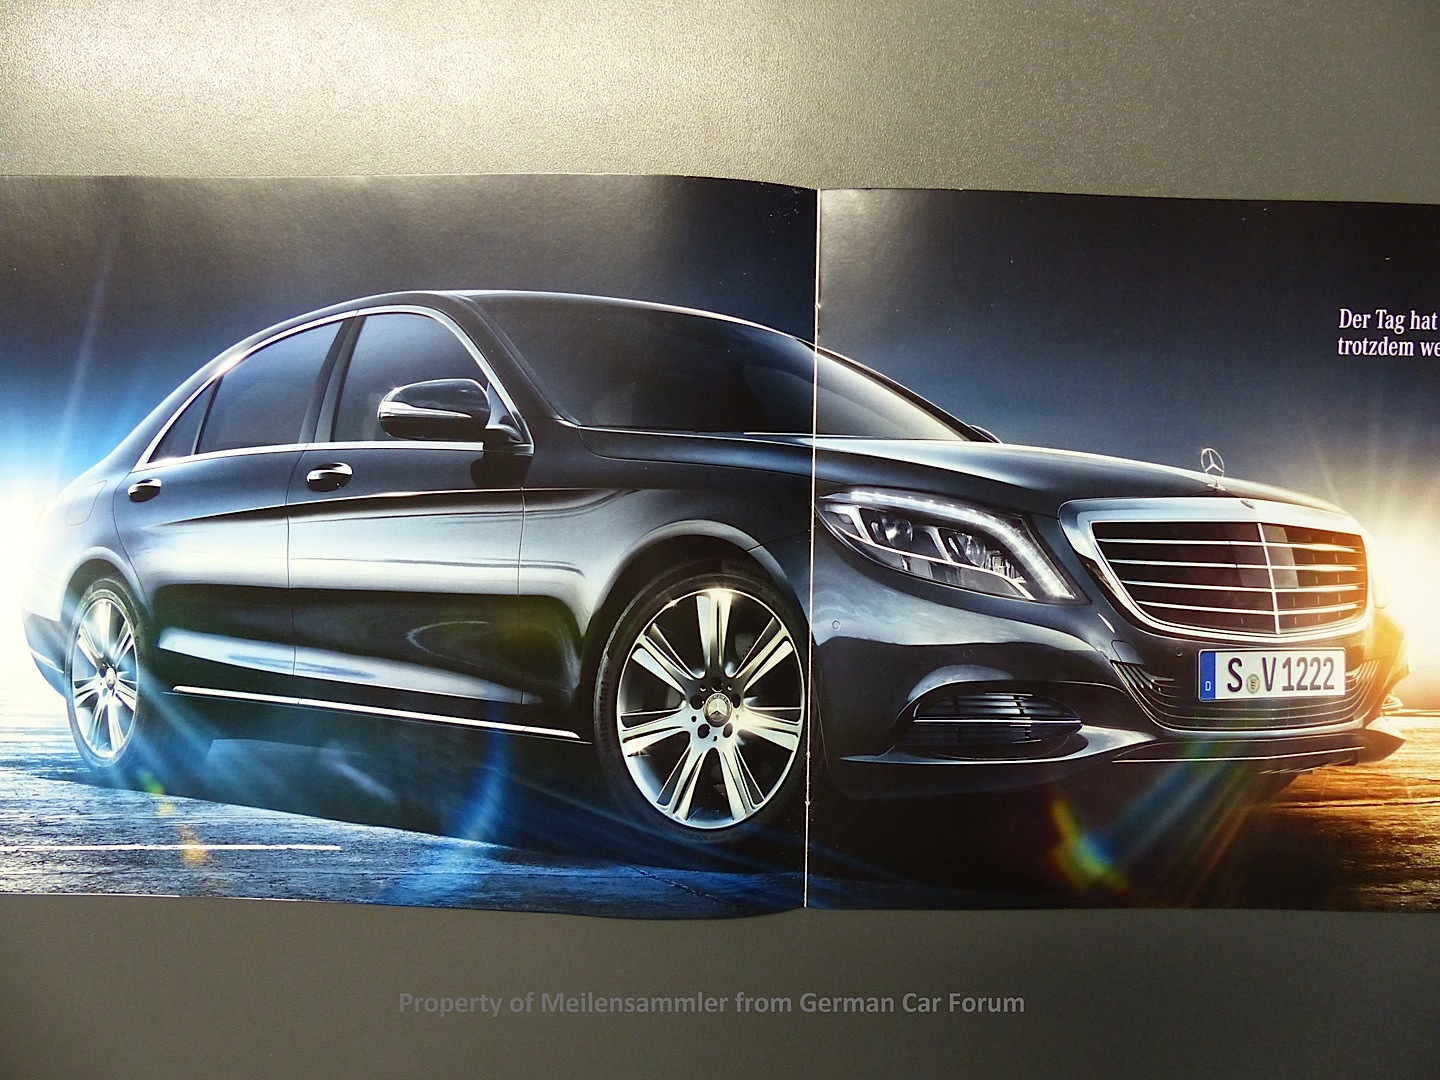 2014 mercedes benz s550 tested autoevolution for New mercedes benz s class 2014